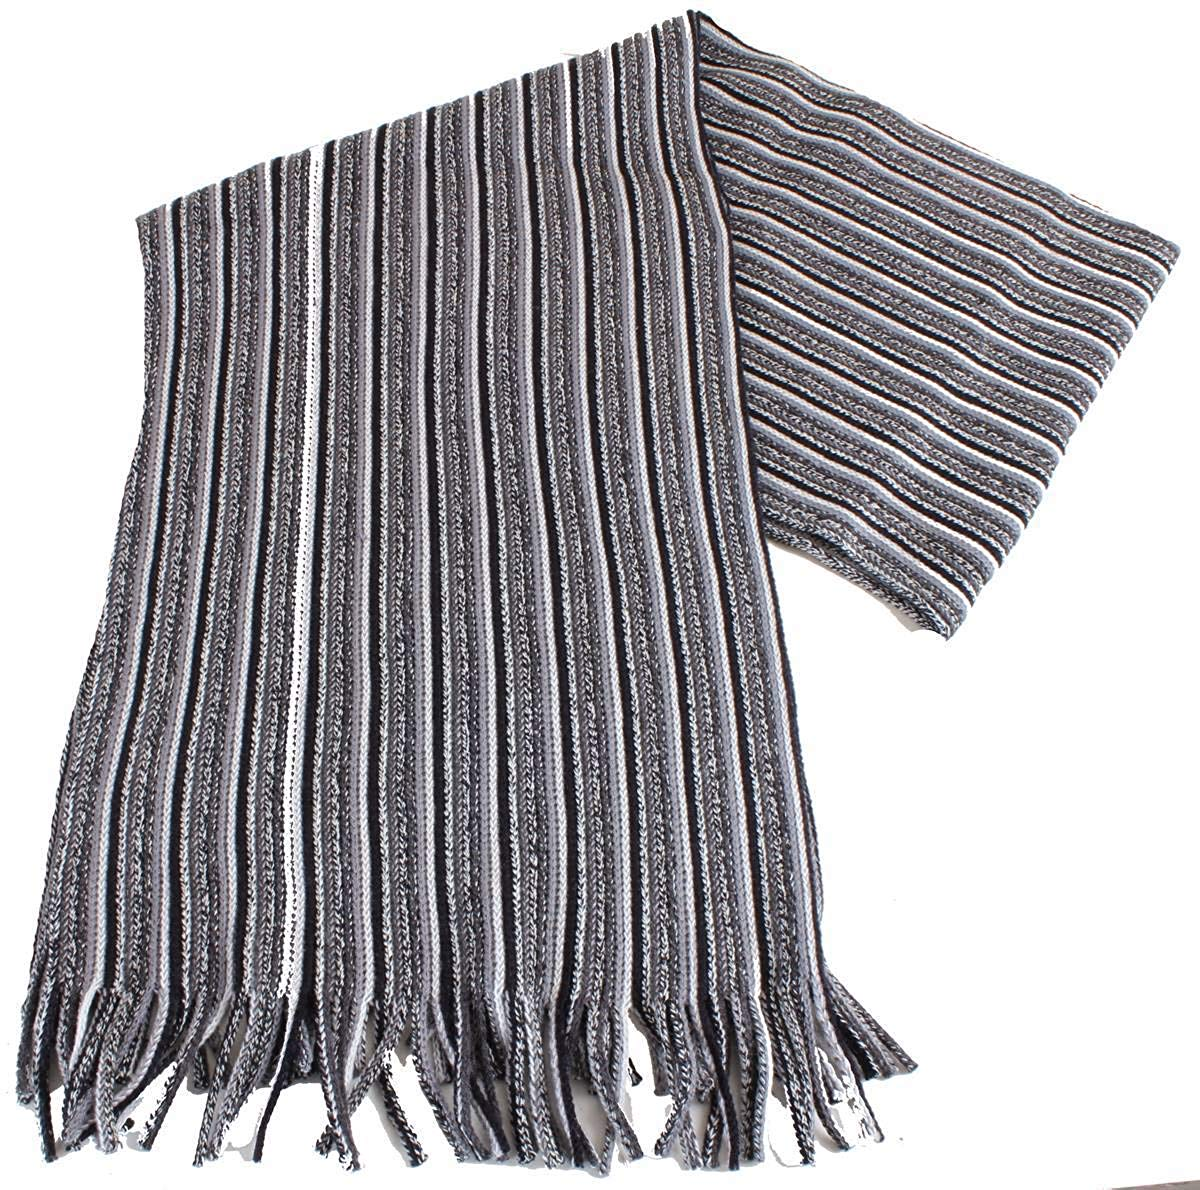 Bassin and Brown Mens Cowdrey Striped Scarf - Grey/Black/White